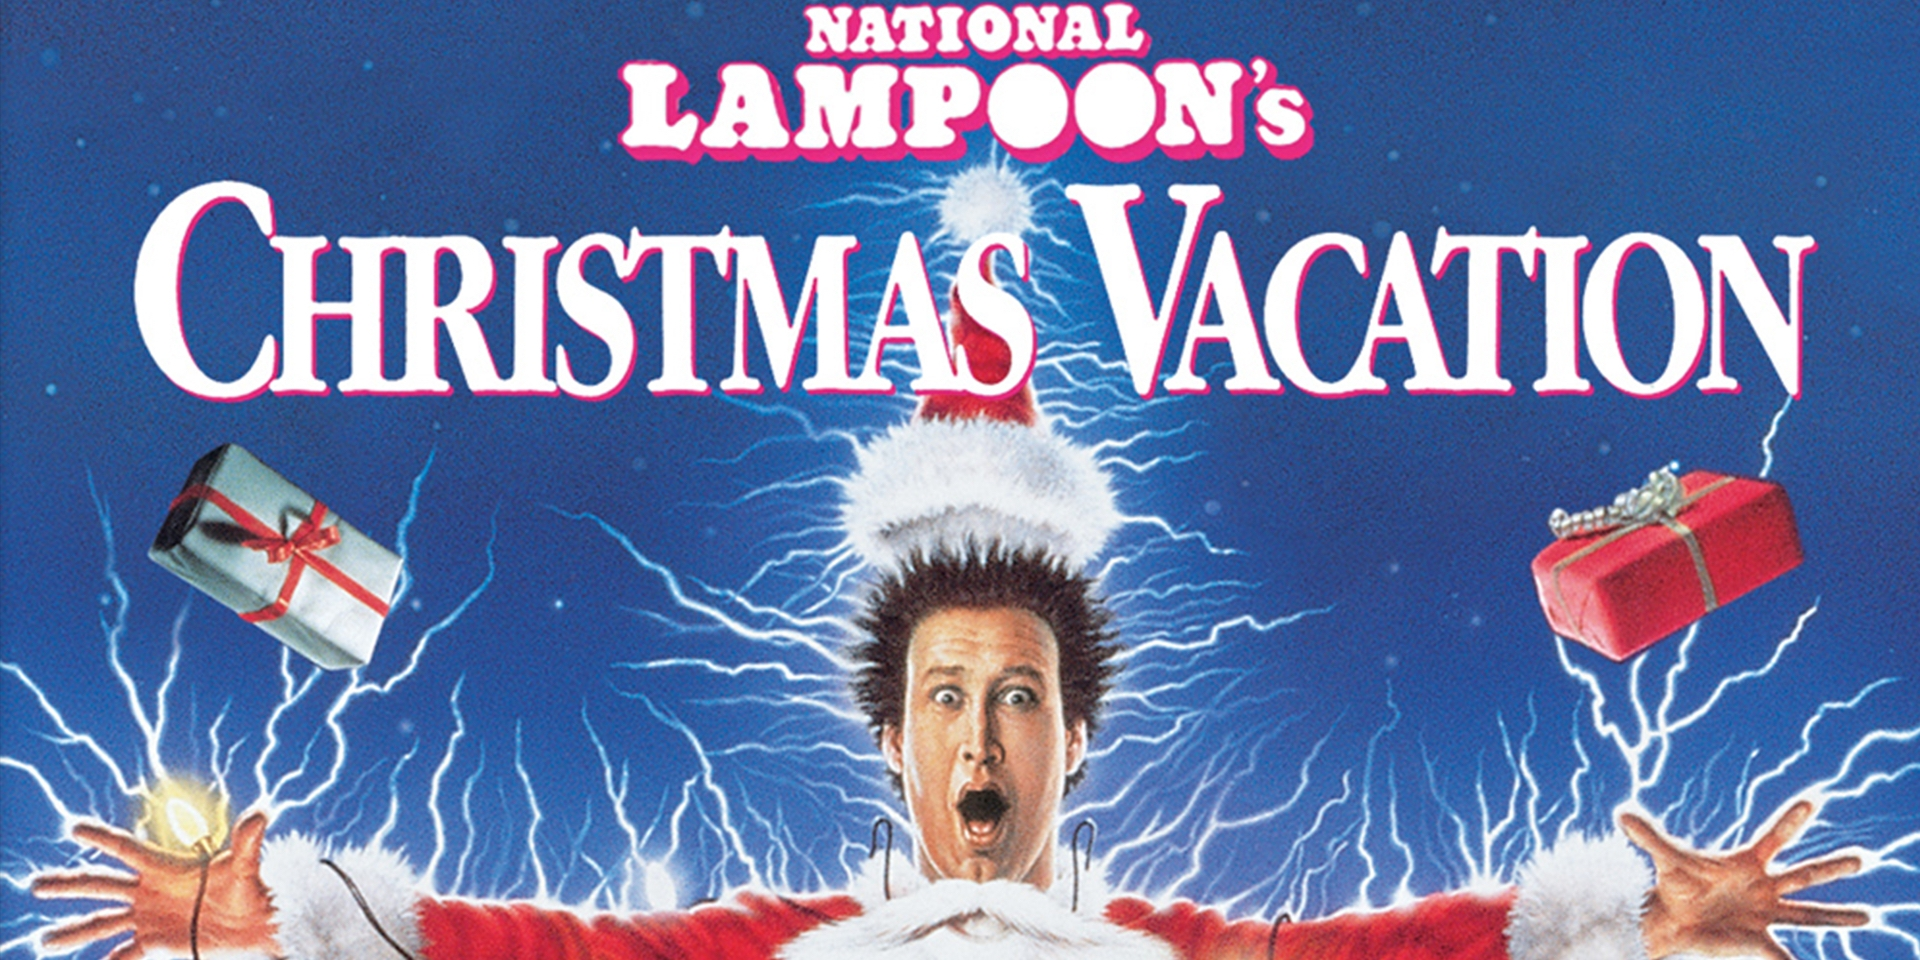 national lampoons christmas vacation historic tennessee theatre est 1928 knoxville tennessee - National Lampoon Christmas Vacation